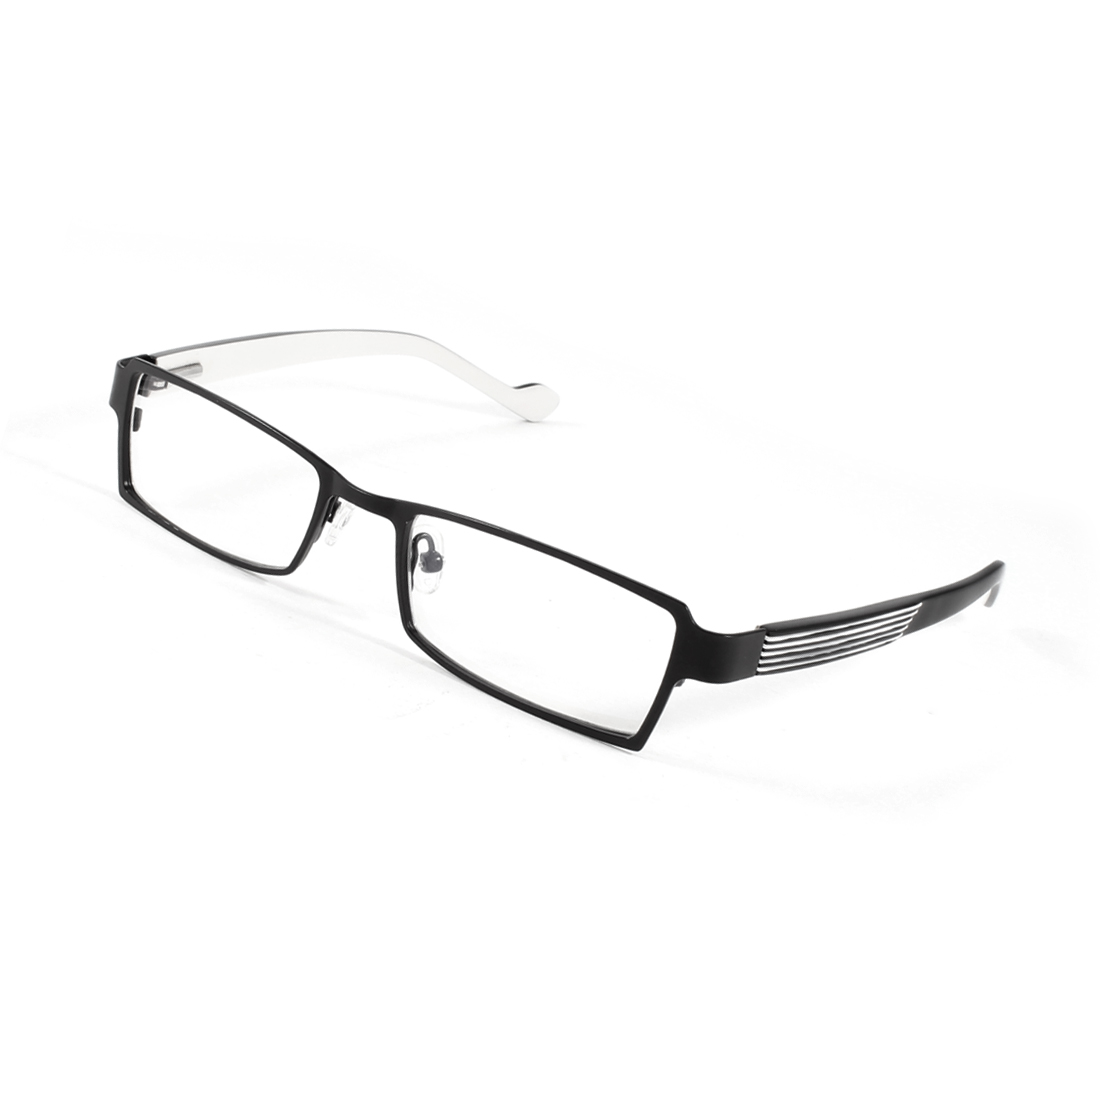 Unisex Black Full Rim Black Arms Rubber Nose Pad MC Clear Lens Plain Eyeware